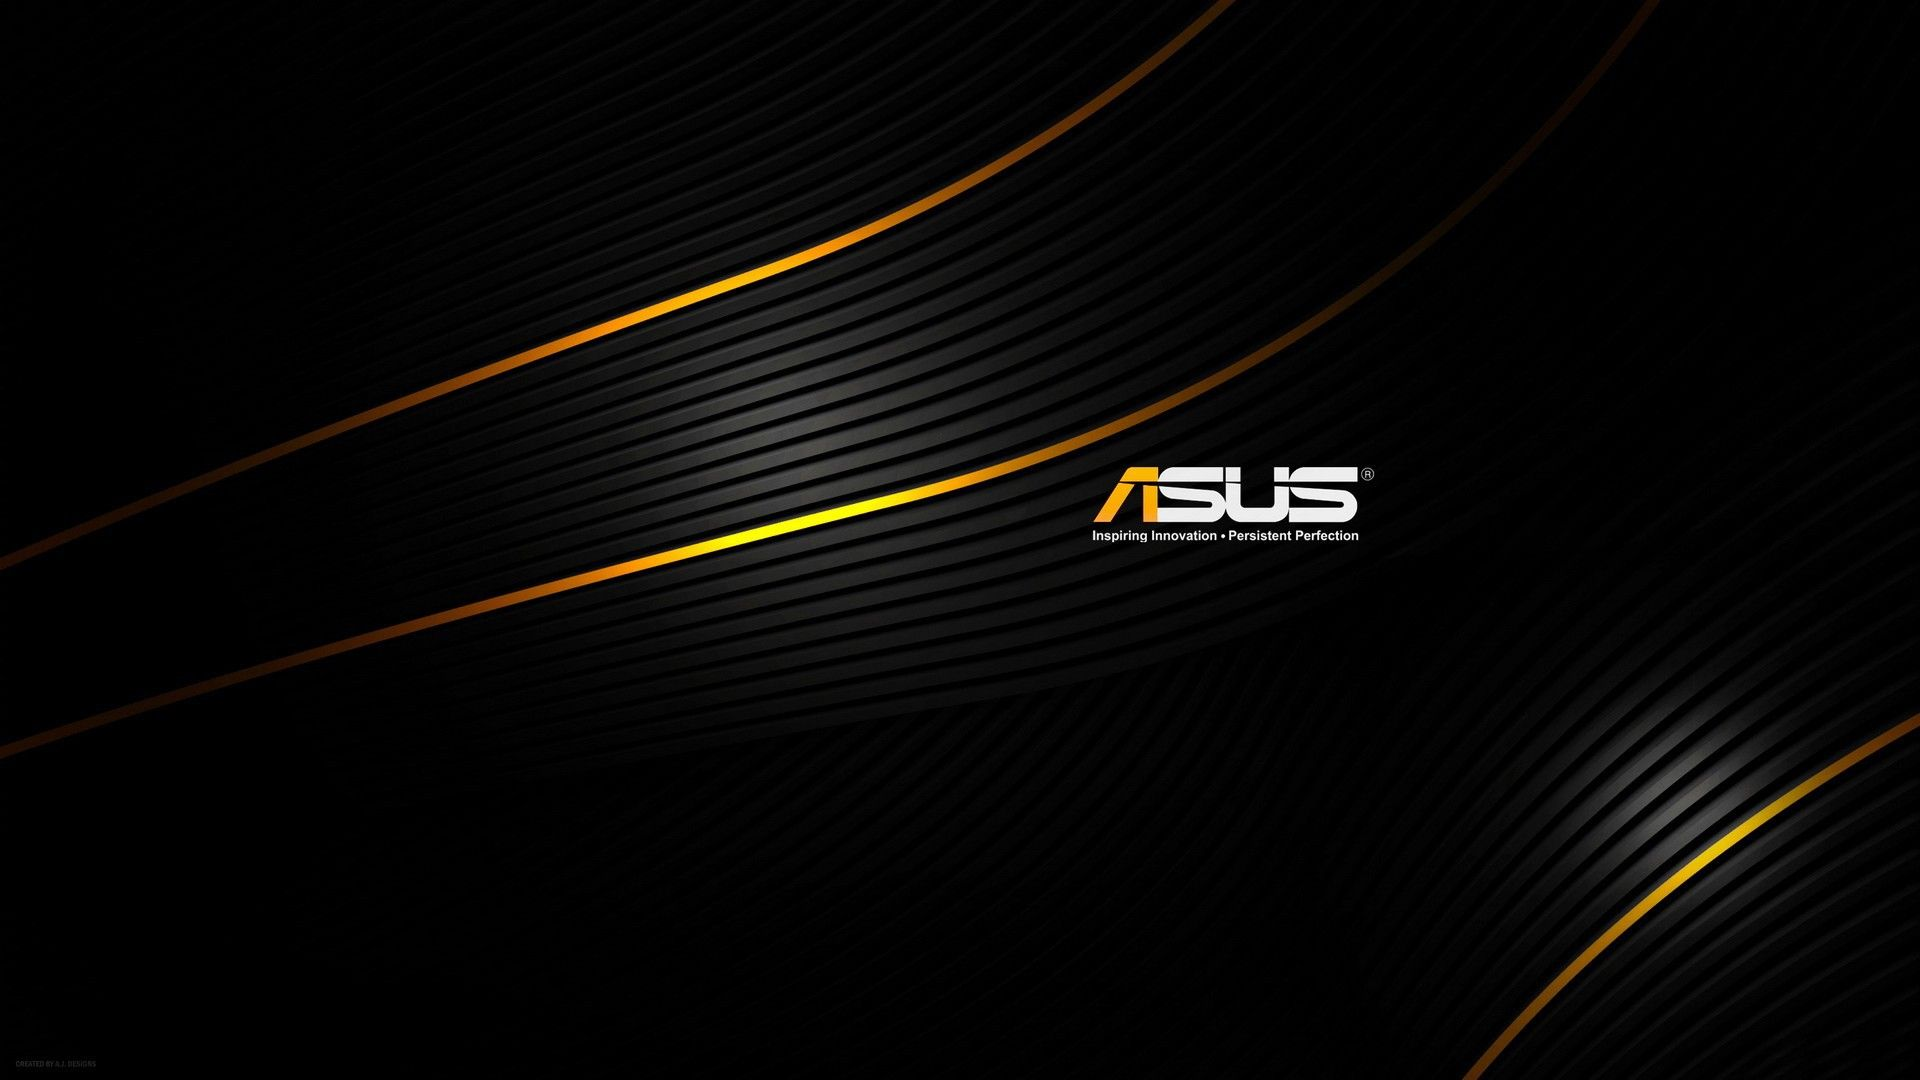 Asus Mobile Wallpaper: High Definition Wallpapers (HD